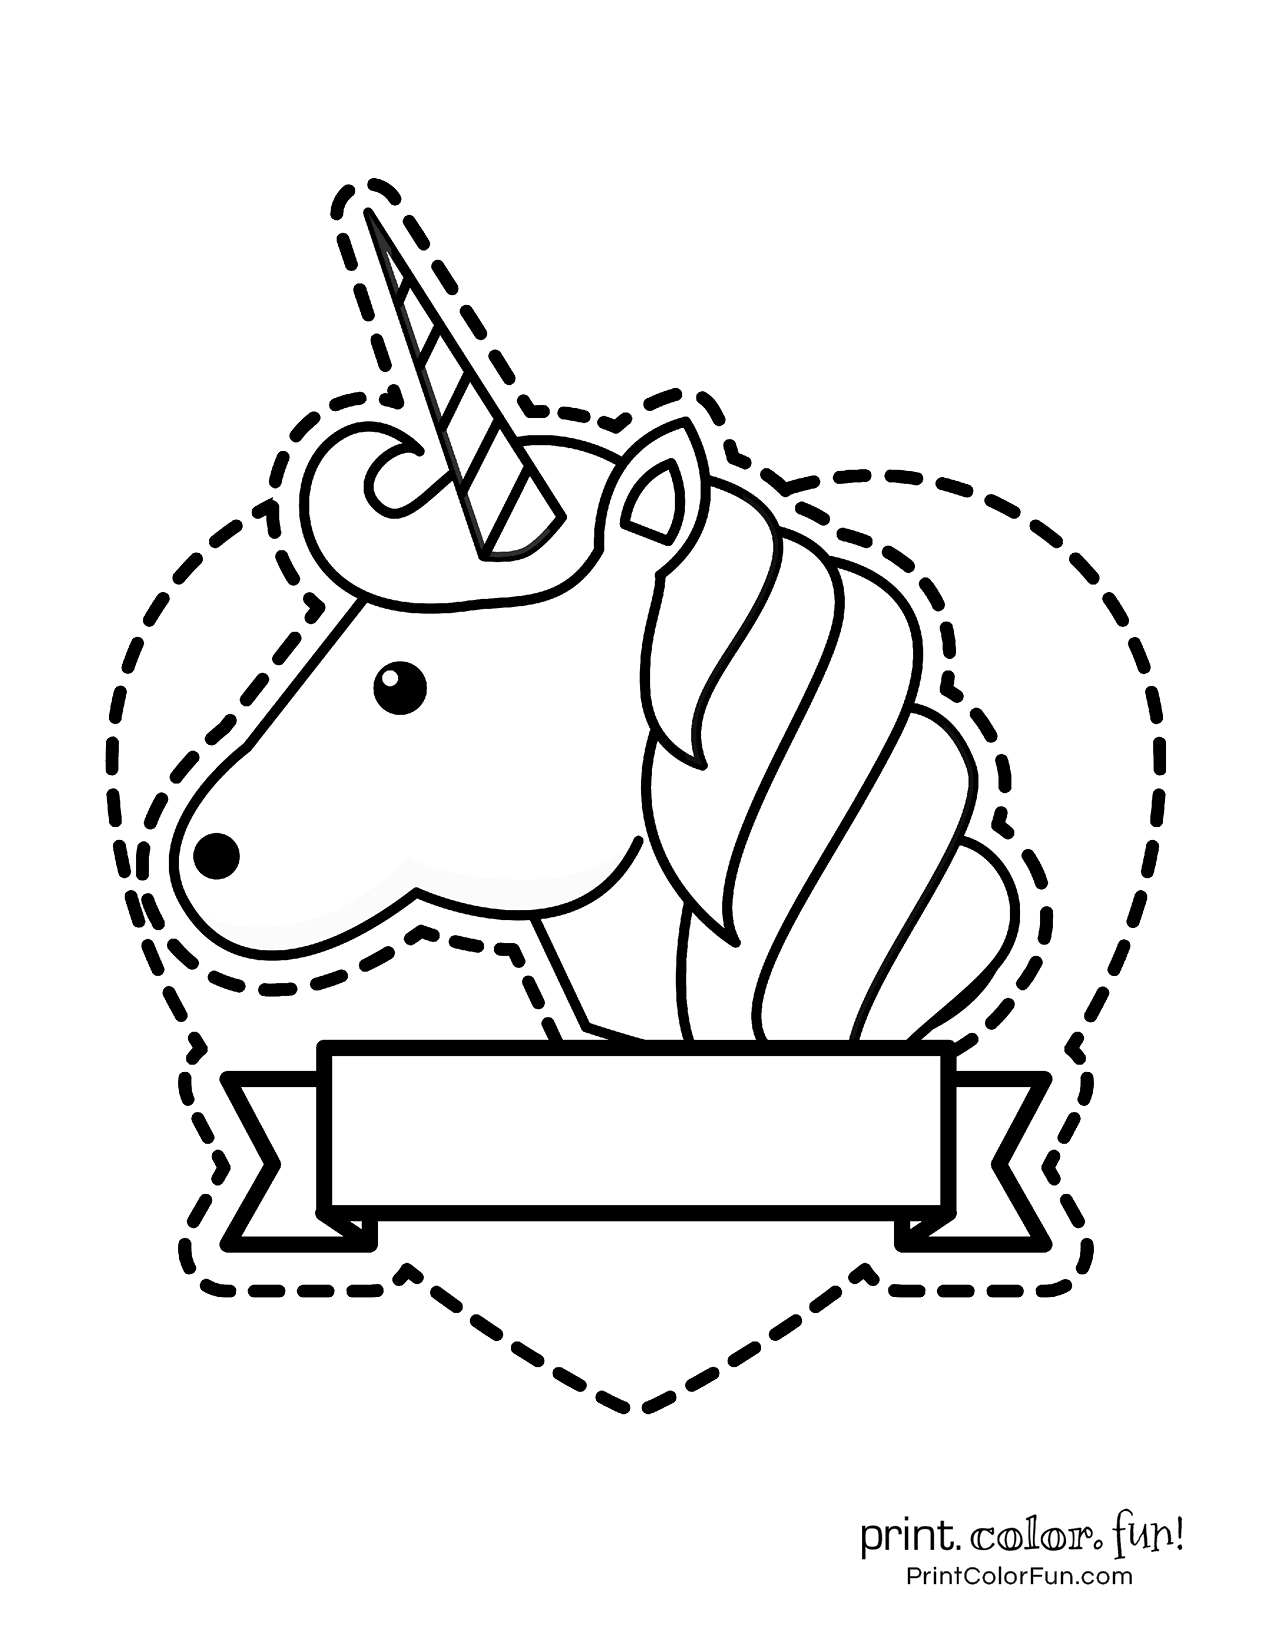 Top 100 Magical Unicorn Coloring Pages The Ultimate Free Printable Collection Print C Unicorn Coloring Pages Mermaid Coloring Pages Hello Kitty Coloring